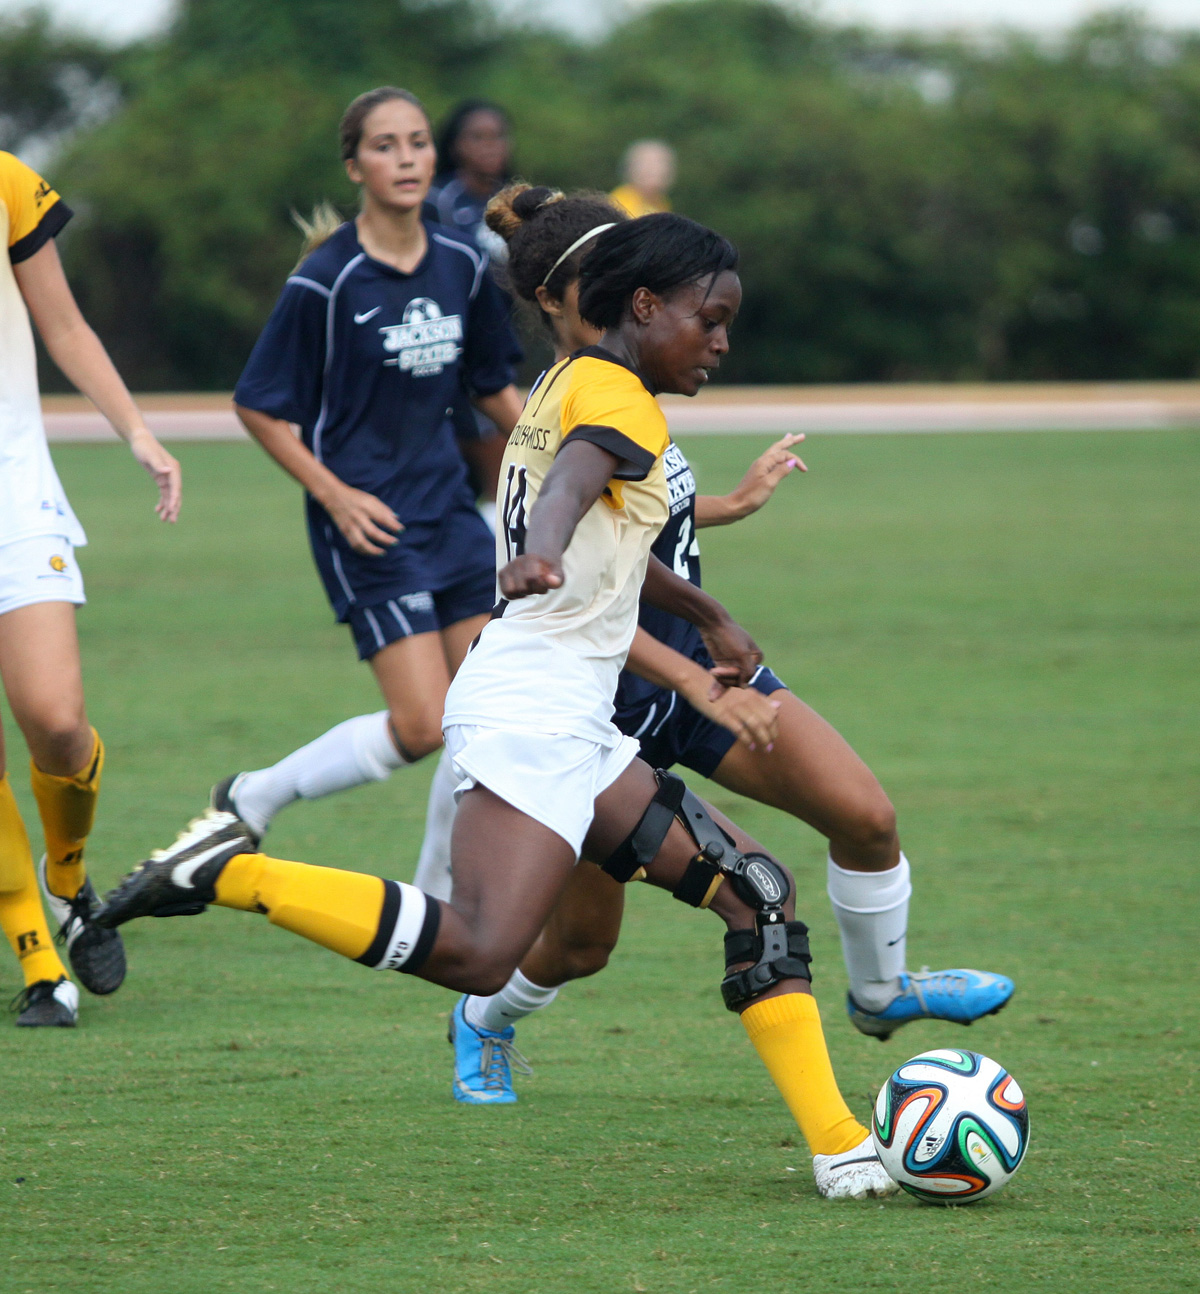 Hypolite optimistic about USM soccer